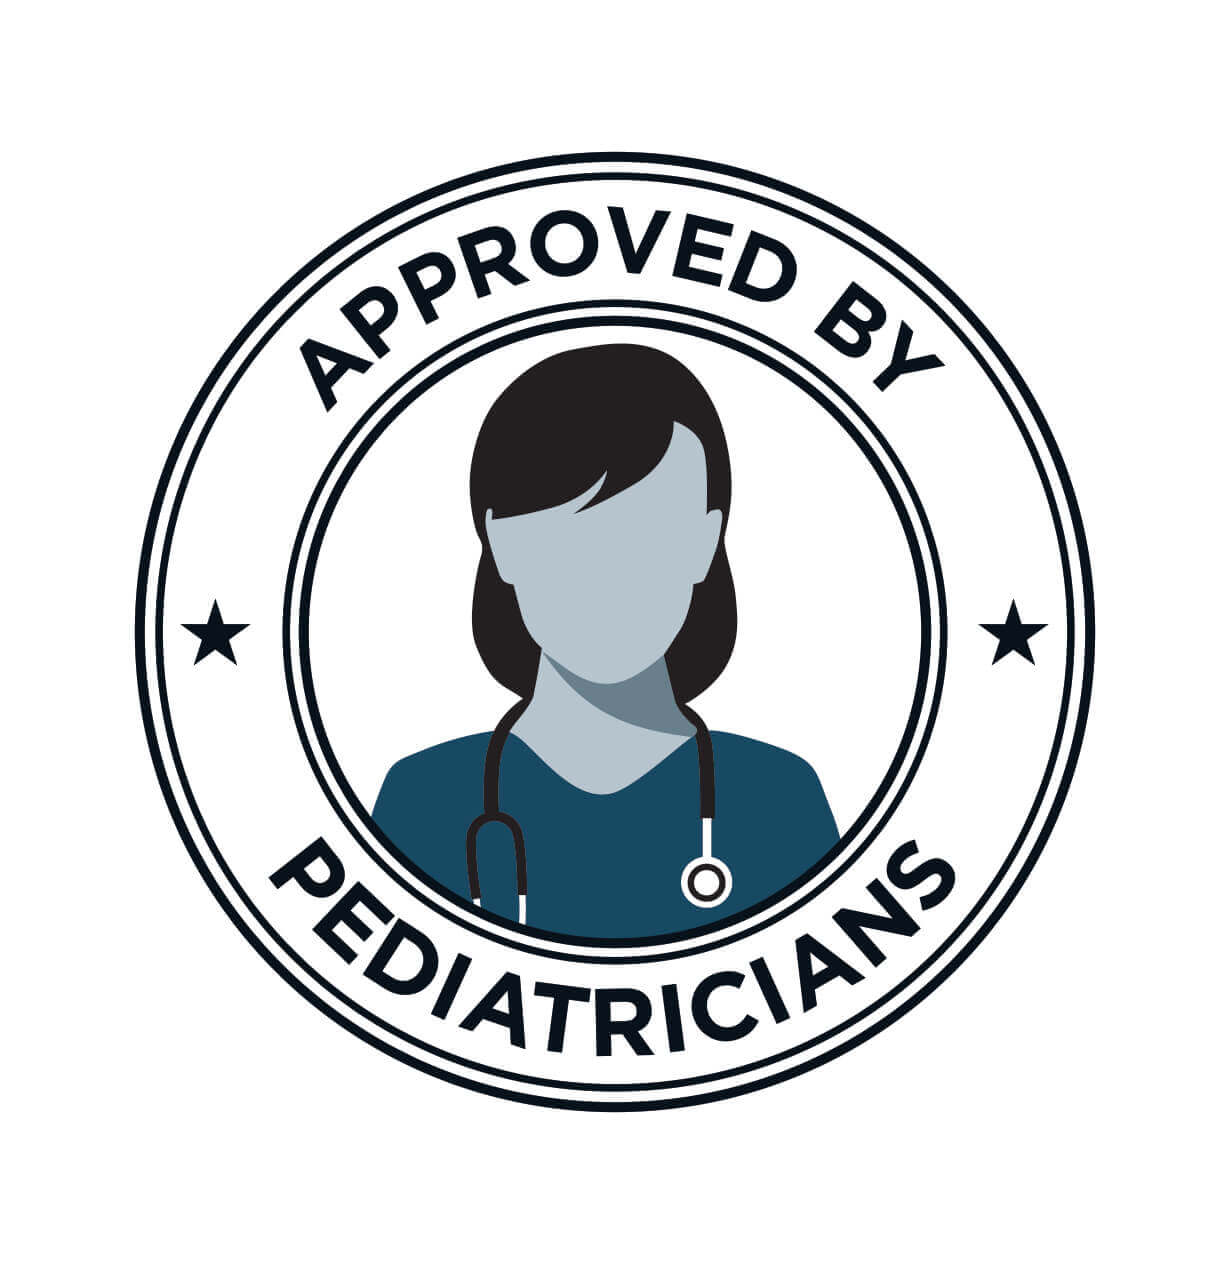 approved by pediatricians